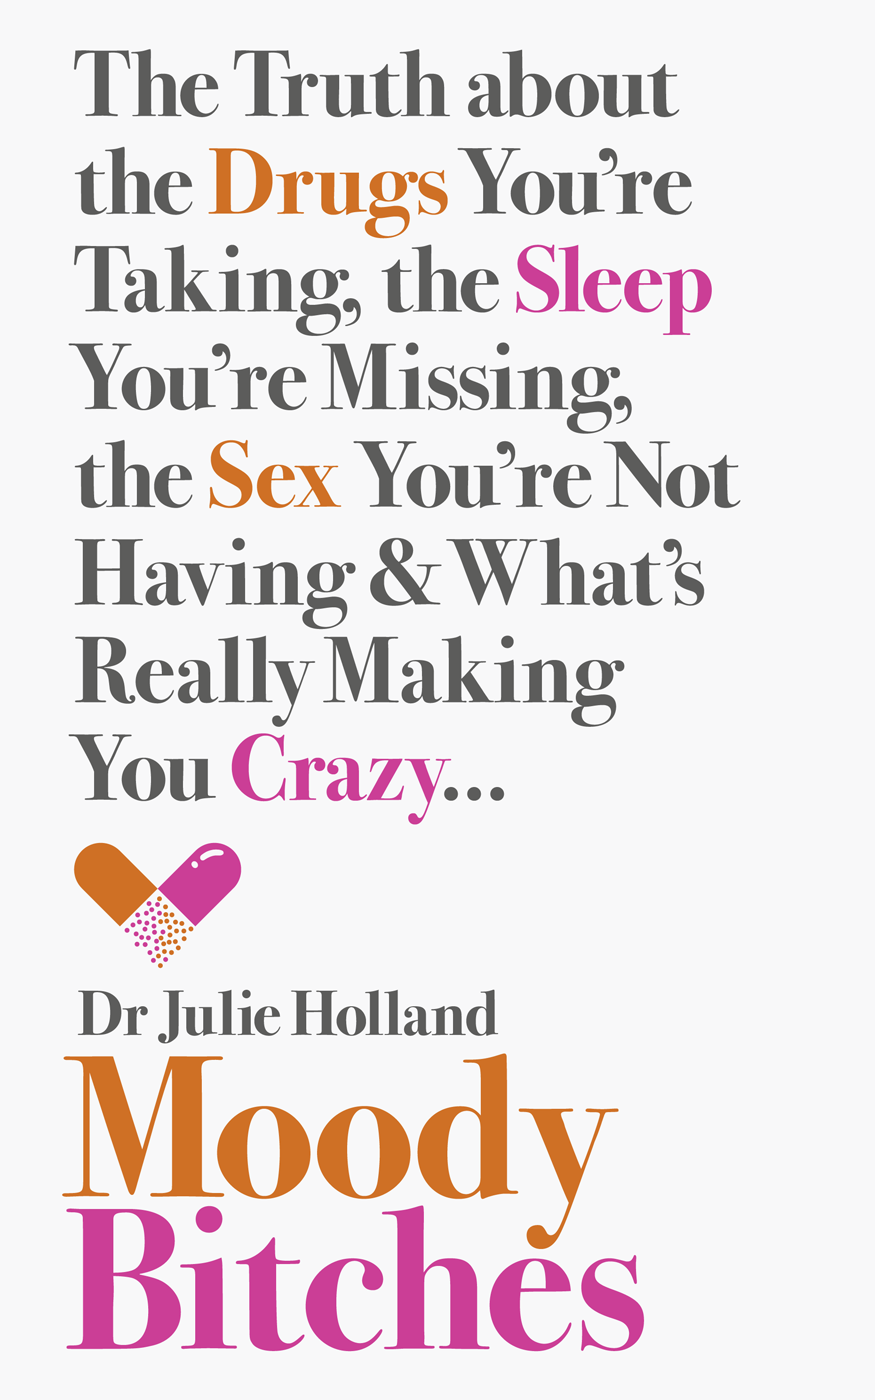 Julie Holland Moody Bitches: The Truth about the Drugs You're Taking, the Sleep You're Missing, the Sex You're Not Having and What's Really Making You Crazy... недорго, оригинальная цена